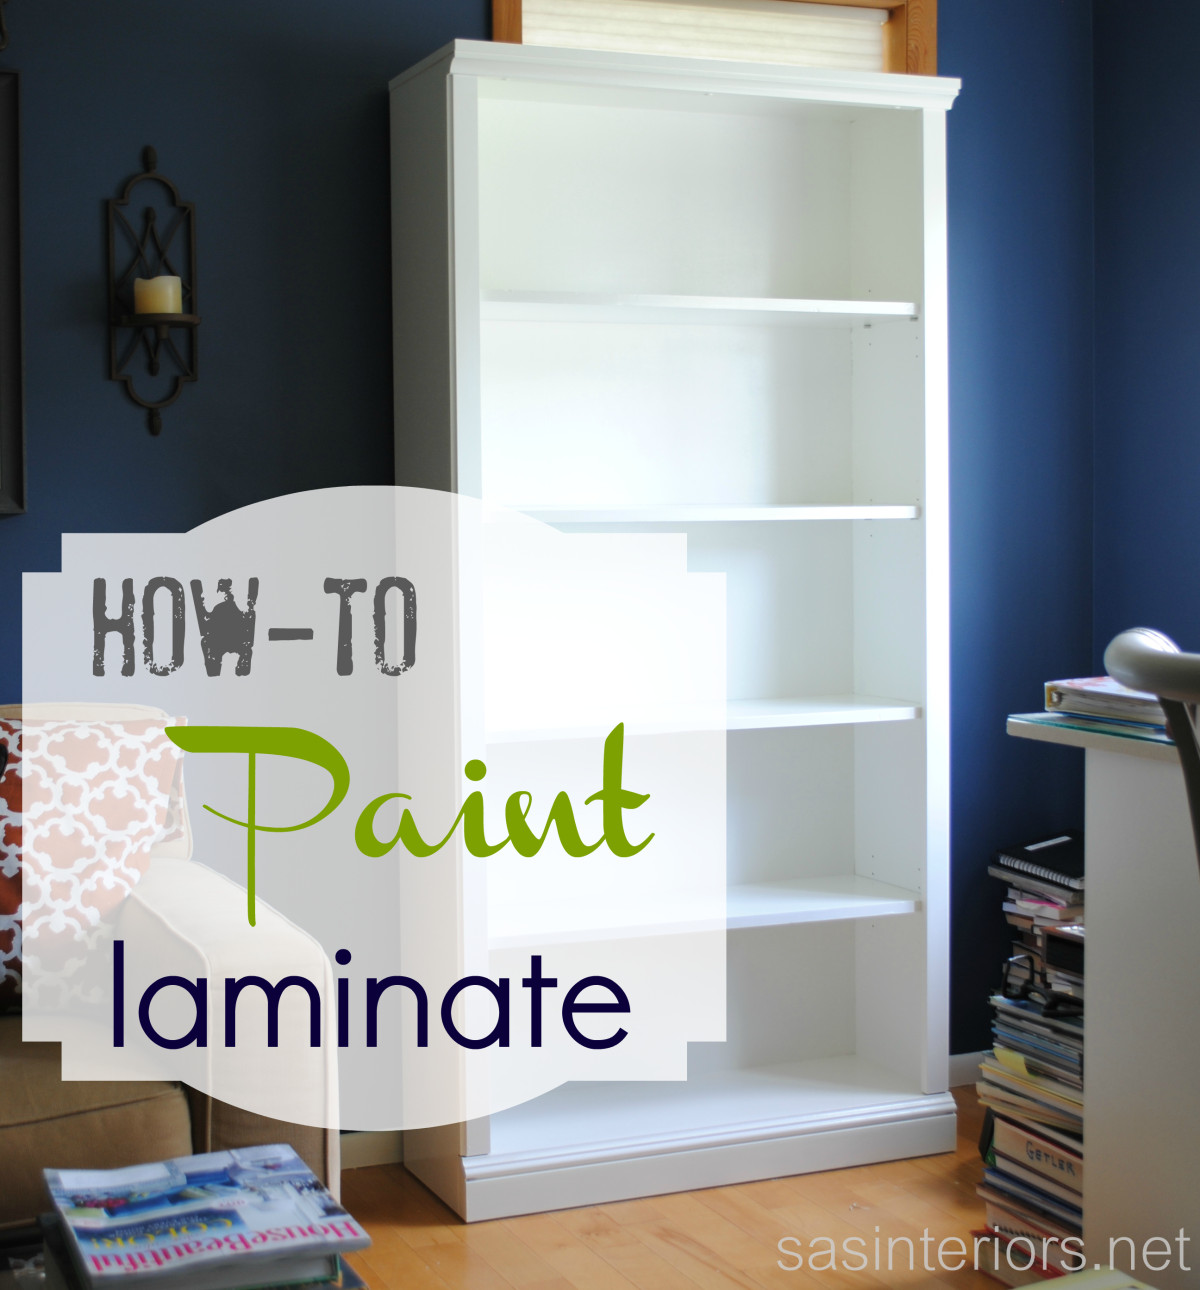 how to paint laminate furniture jenna burger. Black Bedroom Furniture Sets. Home Design Ideas